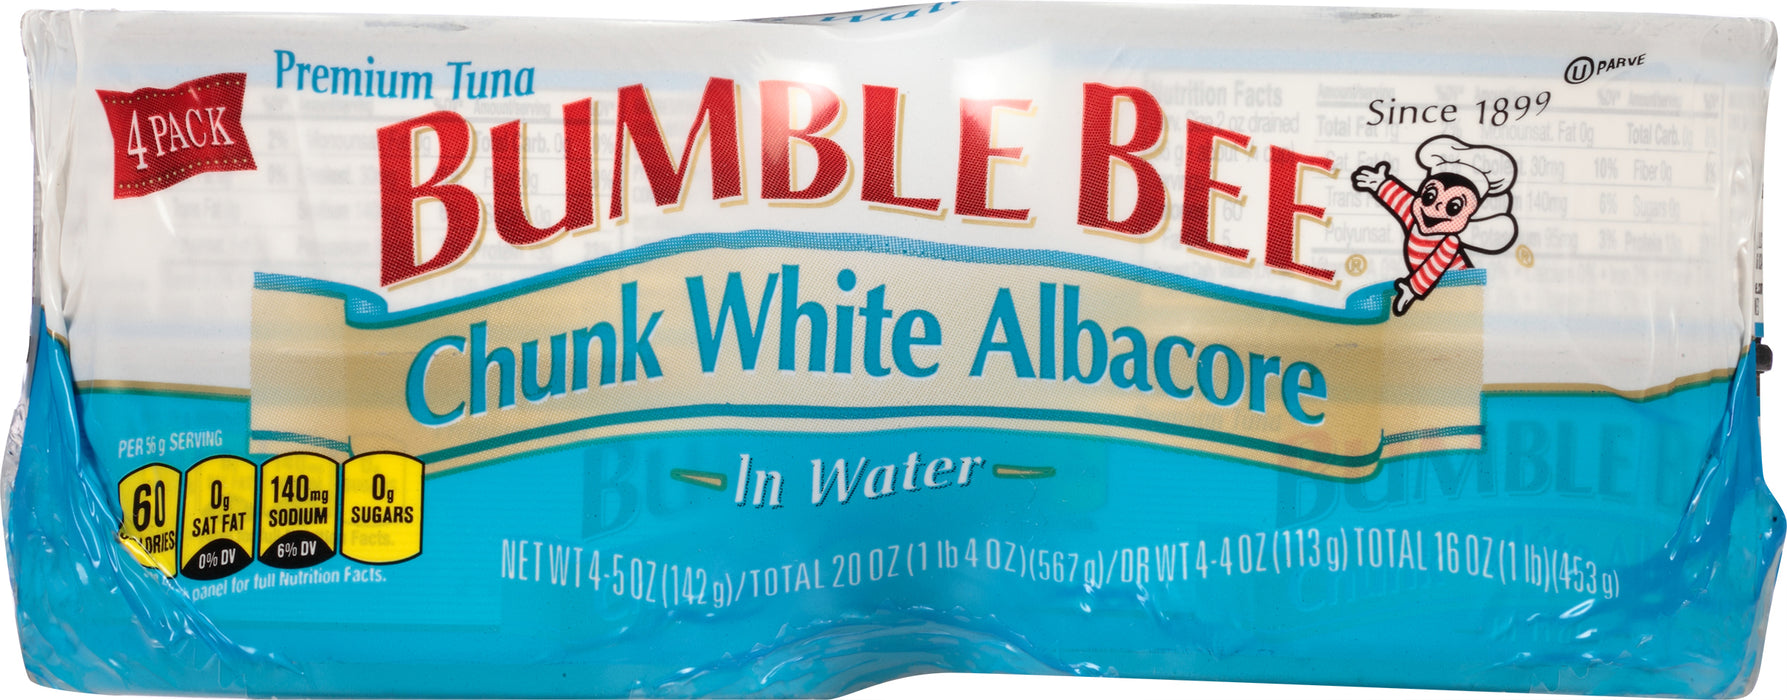 (4 Cans) BUMBLE BEE Chunk White Albacore Tuna Fish in Water, 5 Ounce Cans, High Protein Food and Snacks